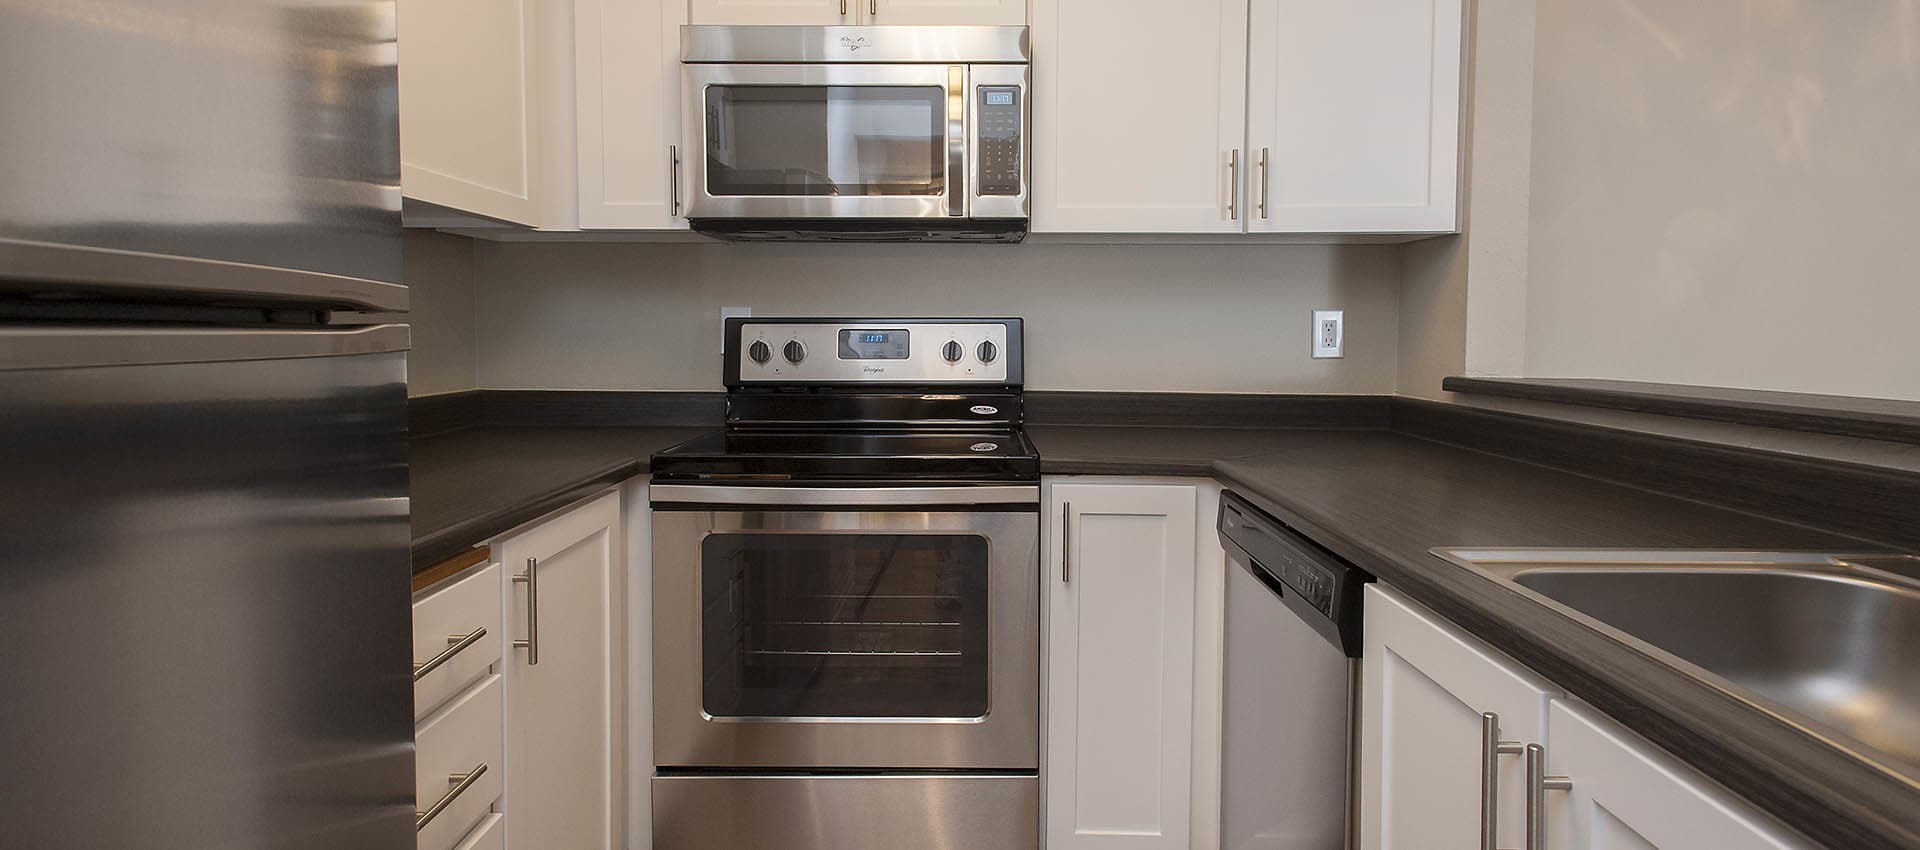 Luxury Kitchen With Stainless Appliances at Waterhouse Place in Beaverton, OR